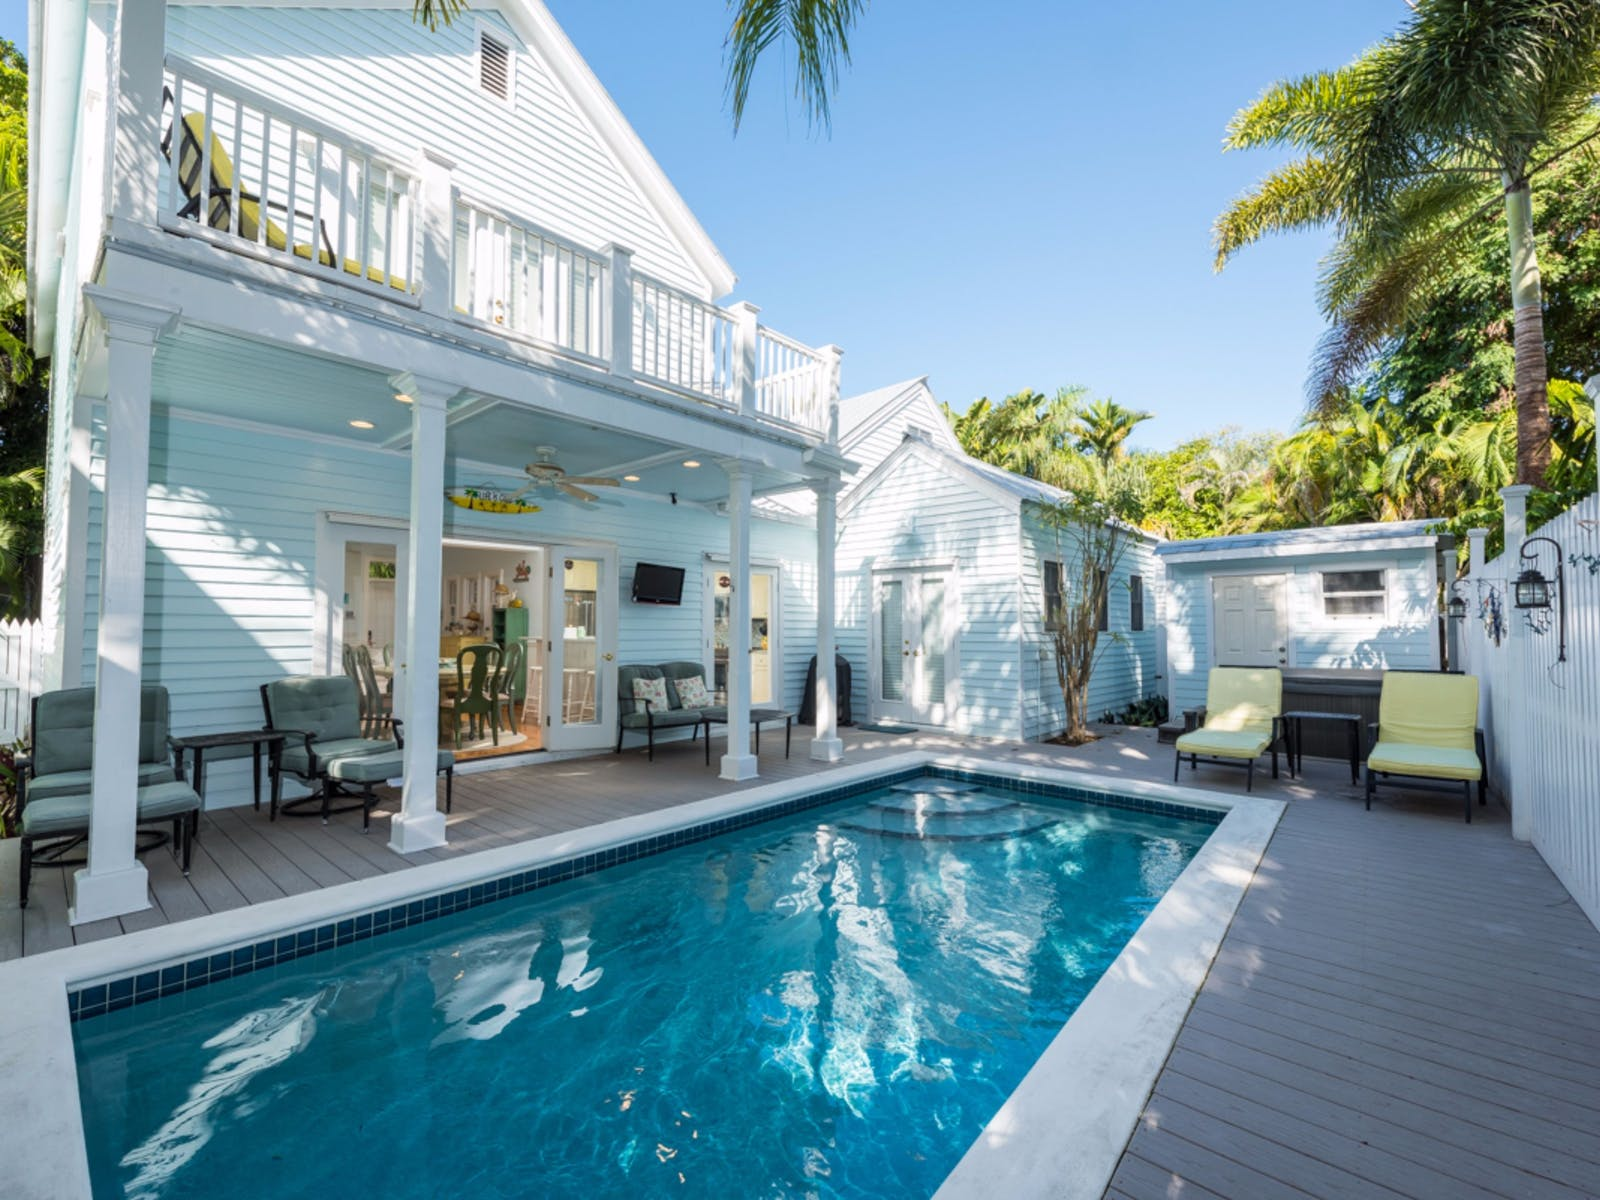 two-story home with outdoor pool in key west, fl